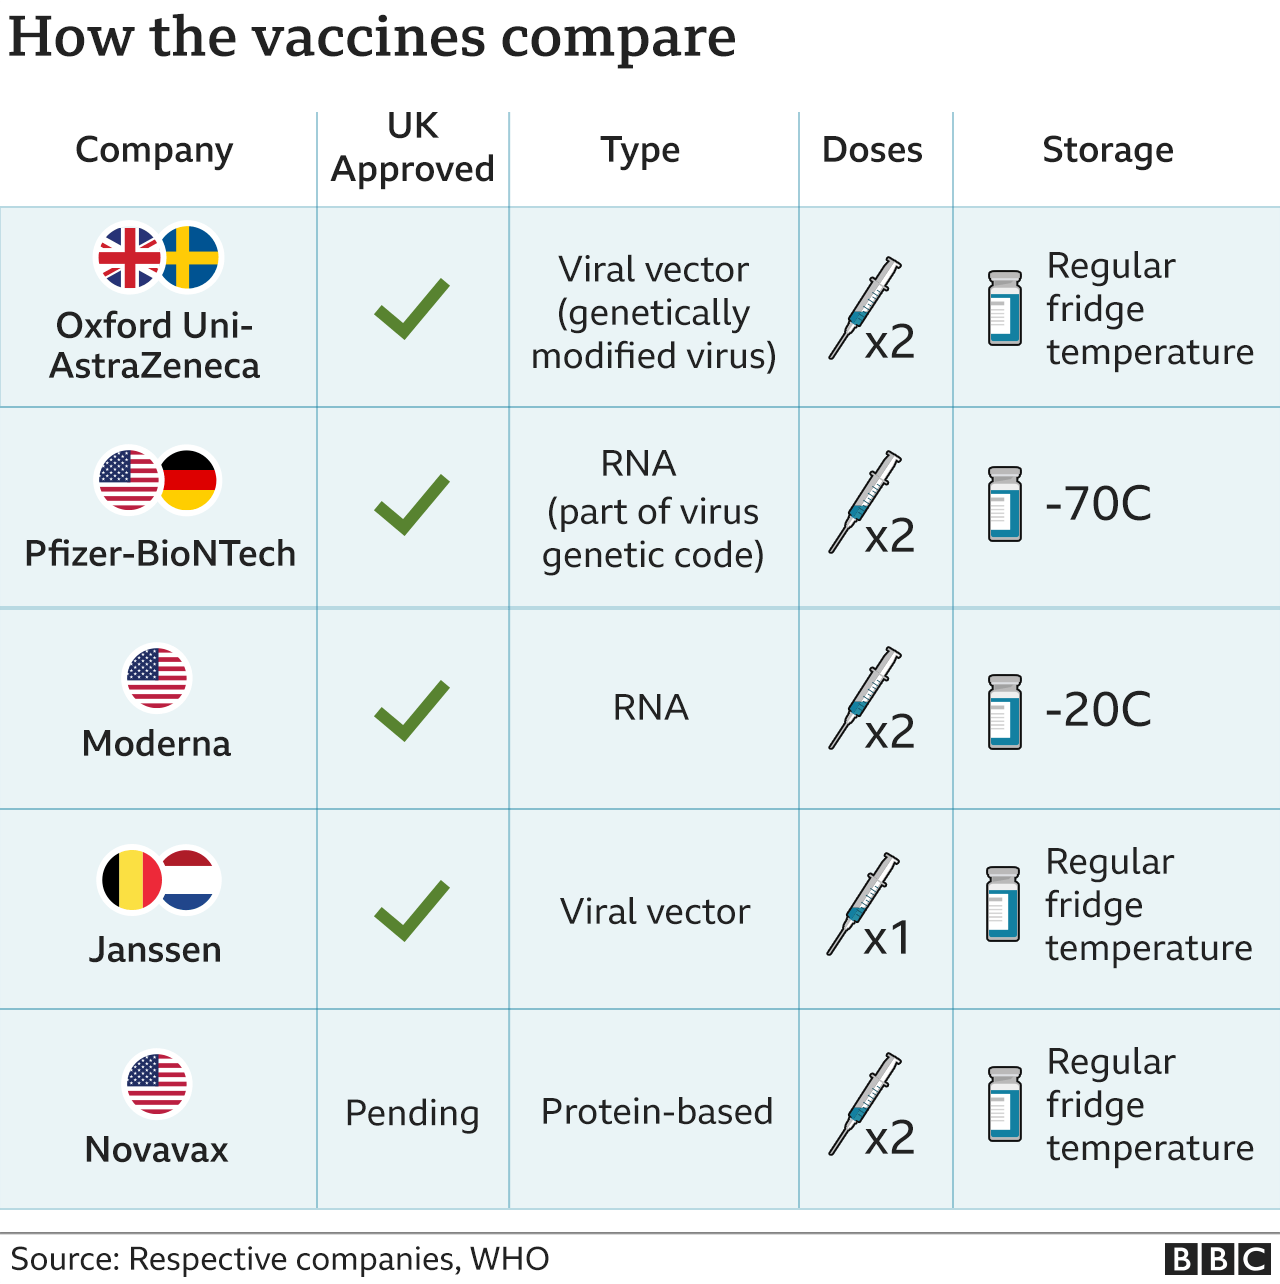 https://ichef.bbci.co.uk/news/976/cpsprodpb/EFF7/production/_118713416_vaccines_compared_28_may_640-nc.png